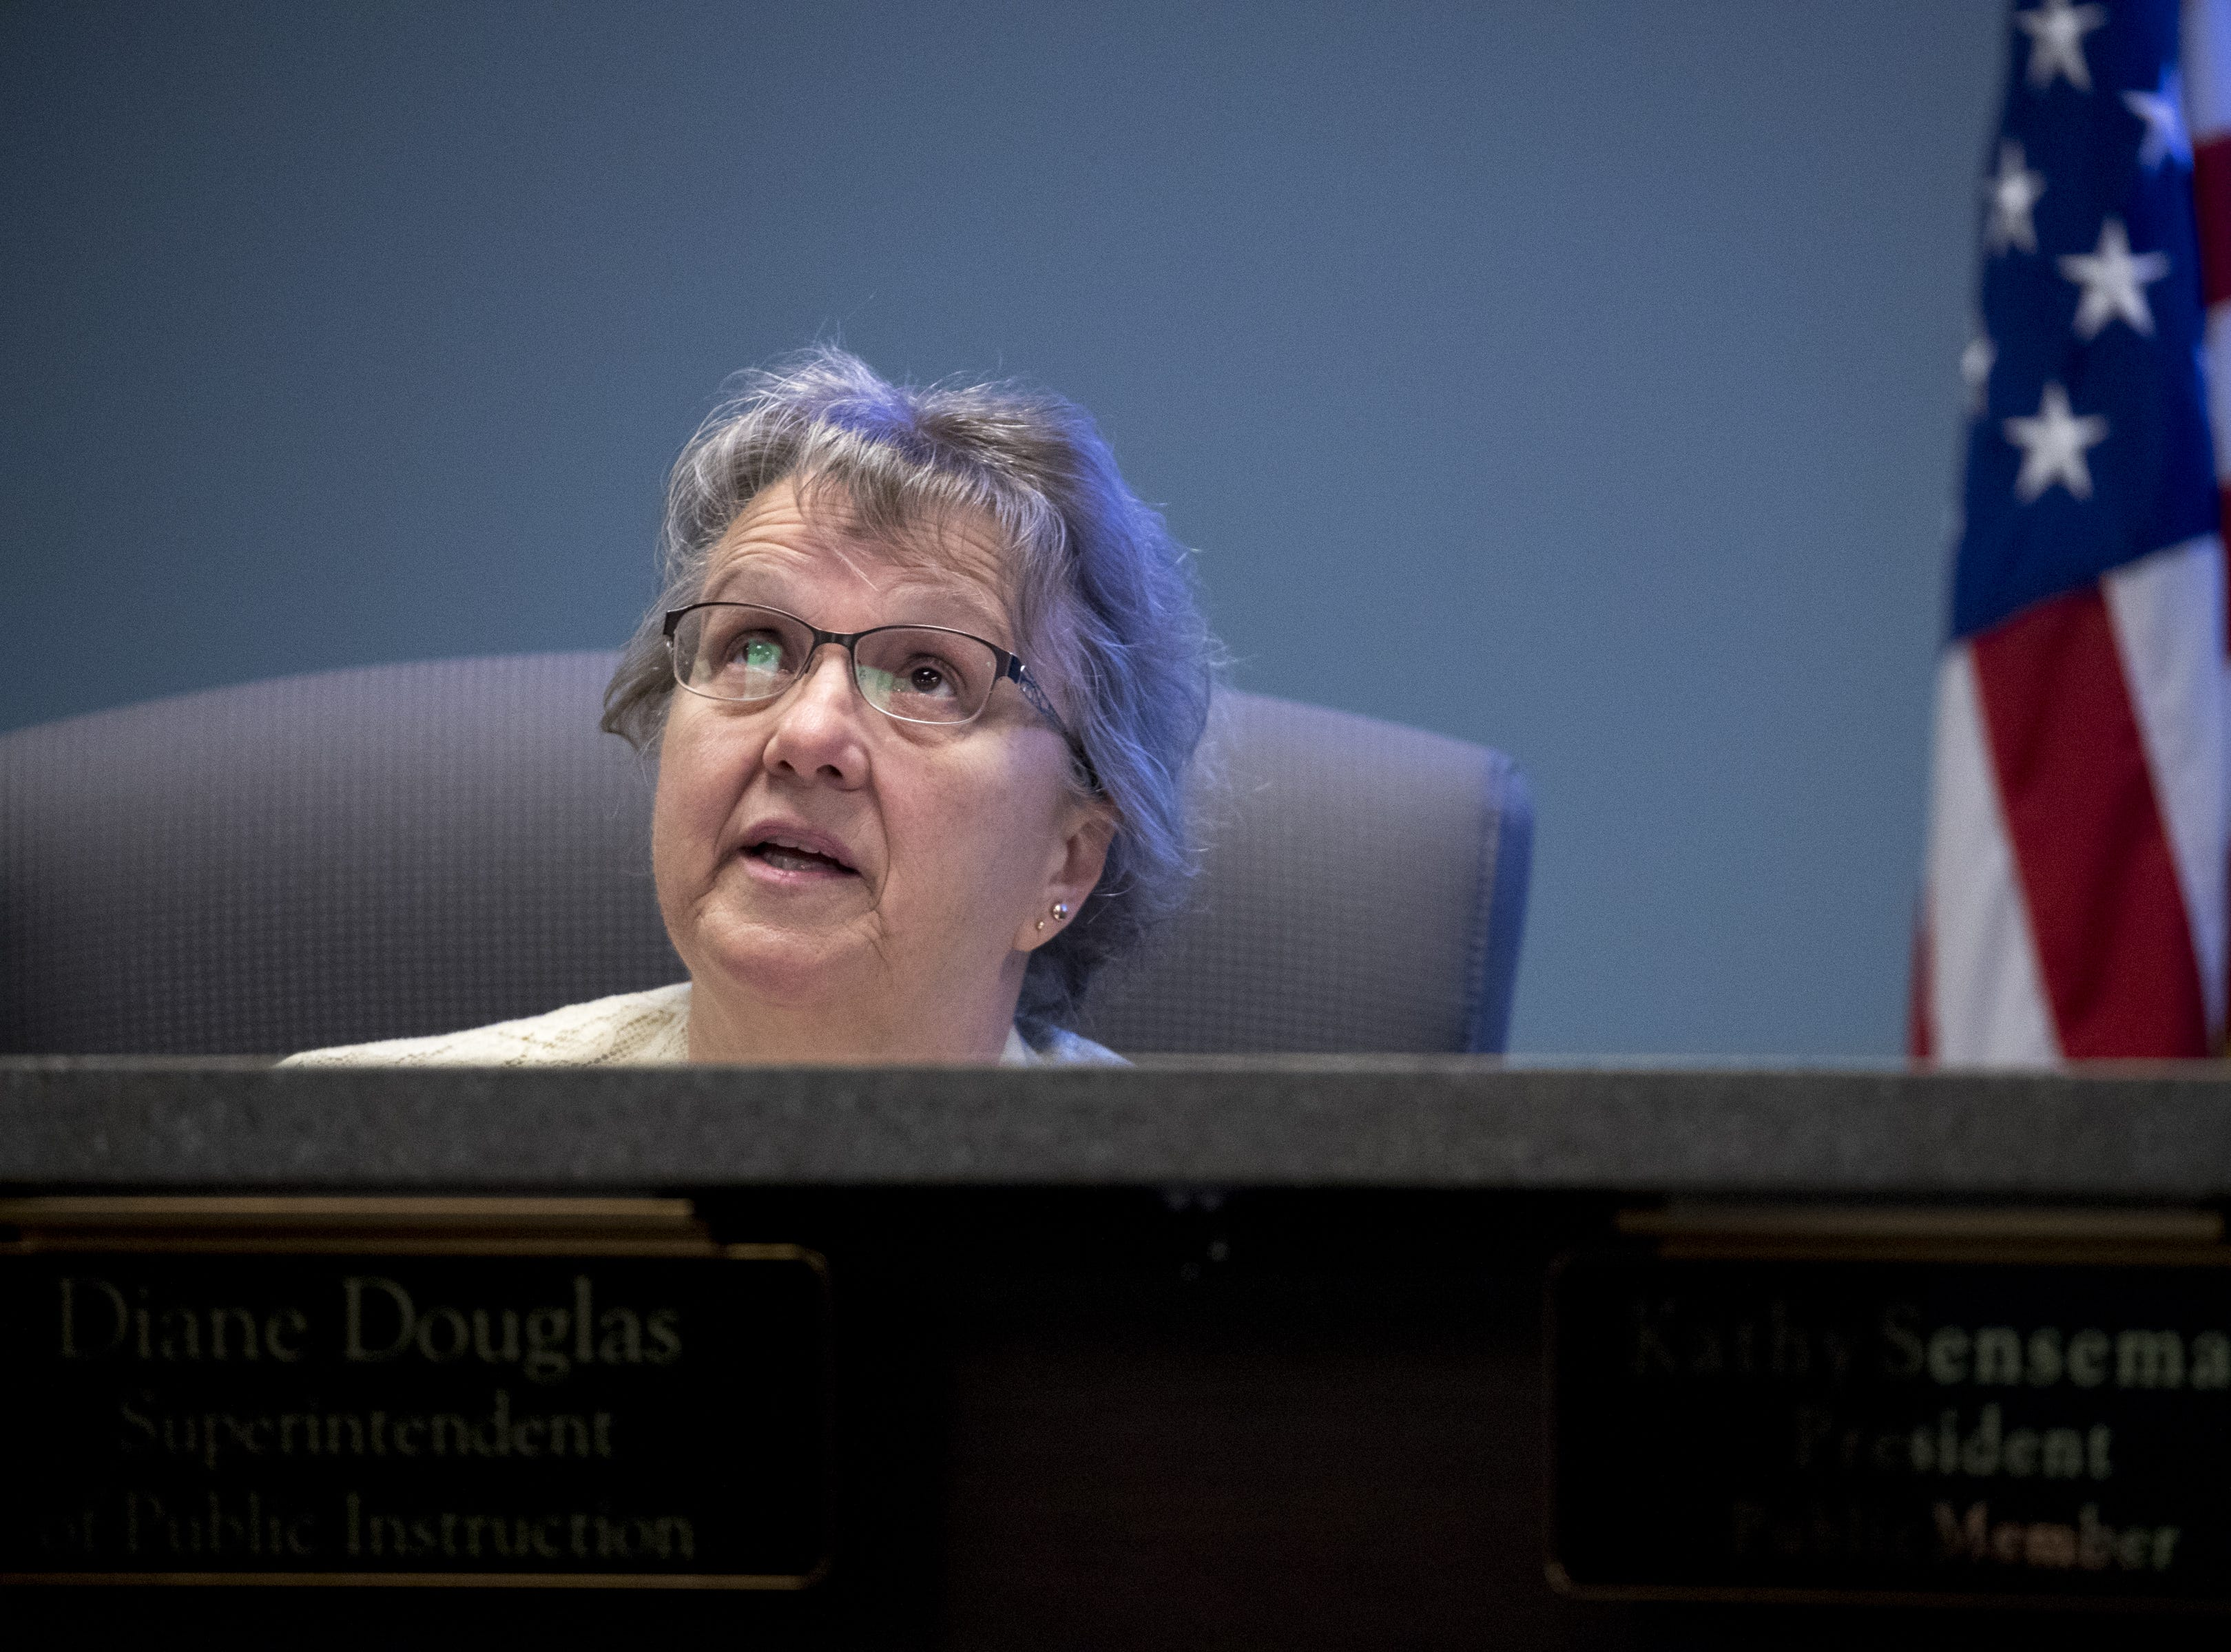 Diane Douglas, Arizona Superintendent of Public Instruction, talks during an Arizona State Board for Charter Schools meeting on Sept. 10, 2018, at the Arizona Department of Education in Phoenix.